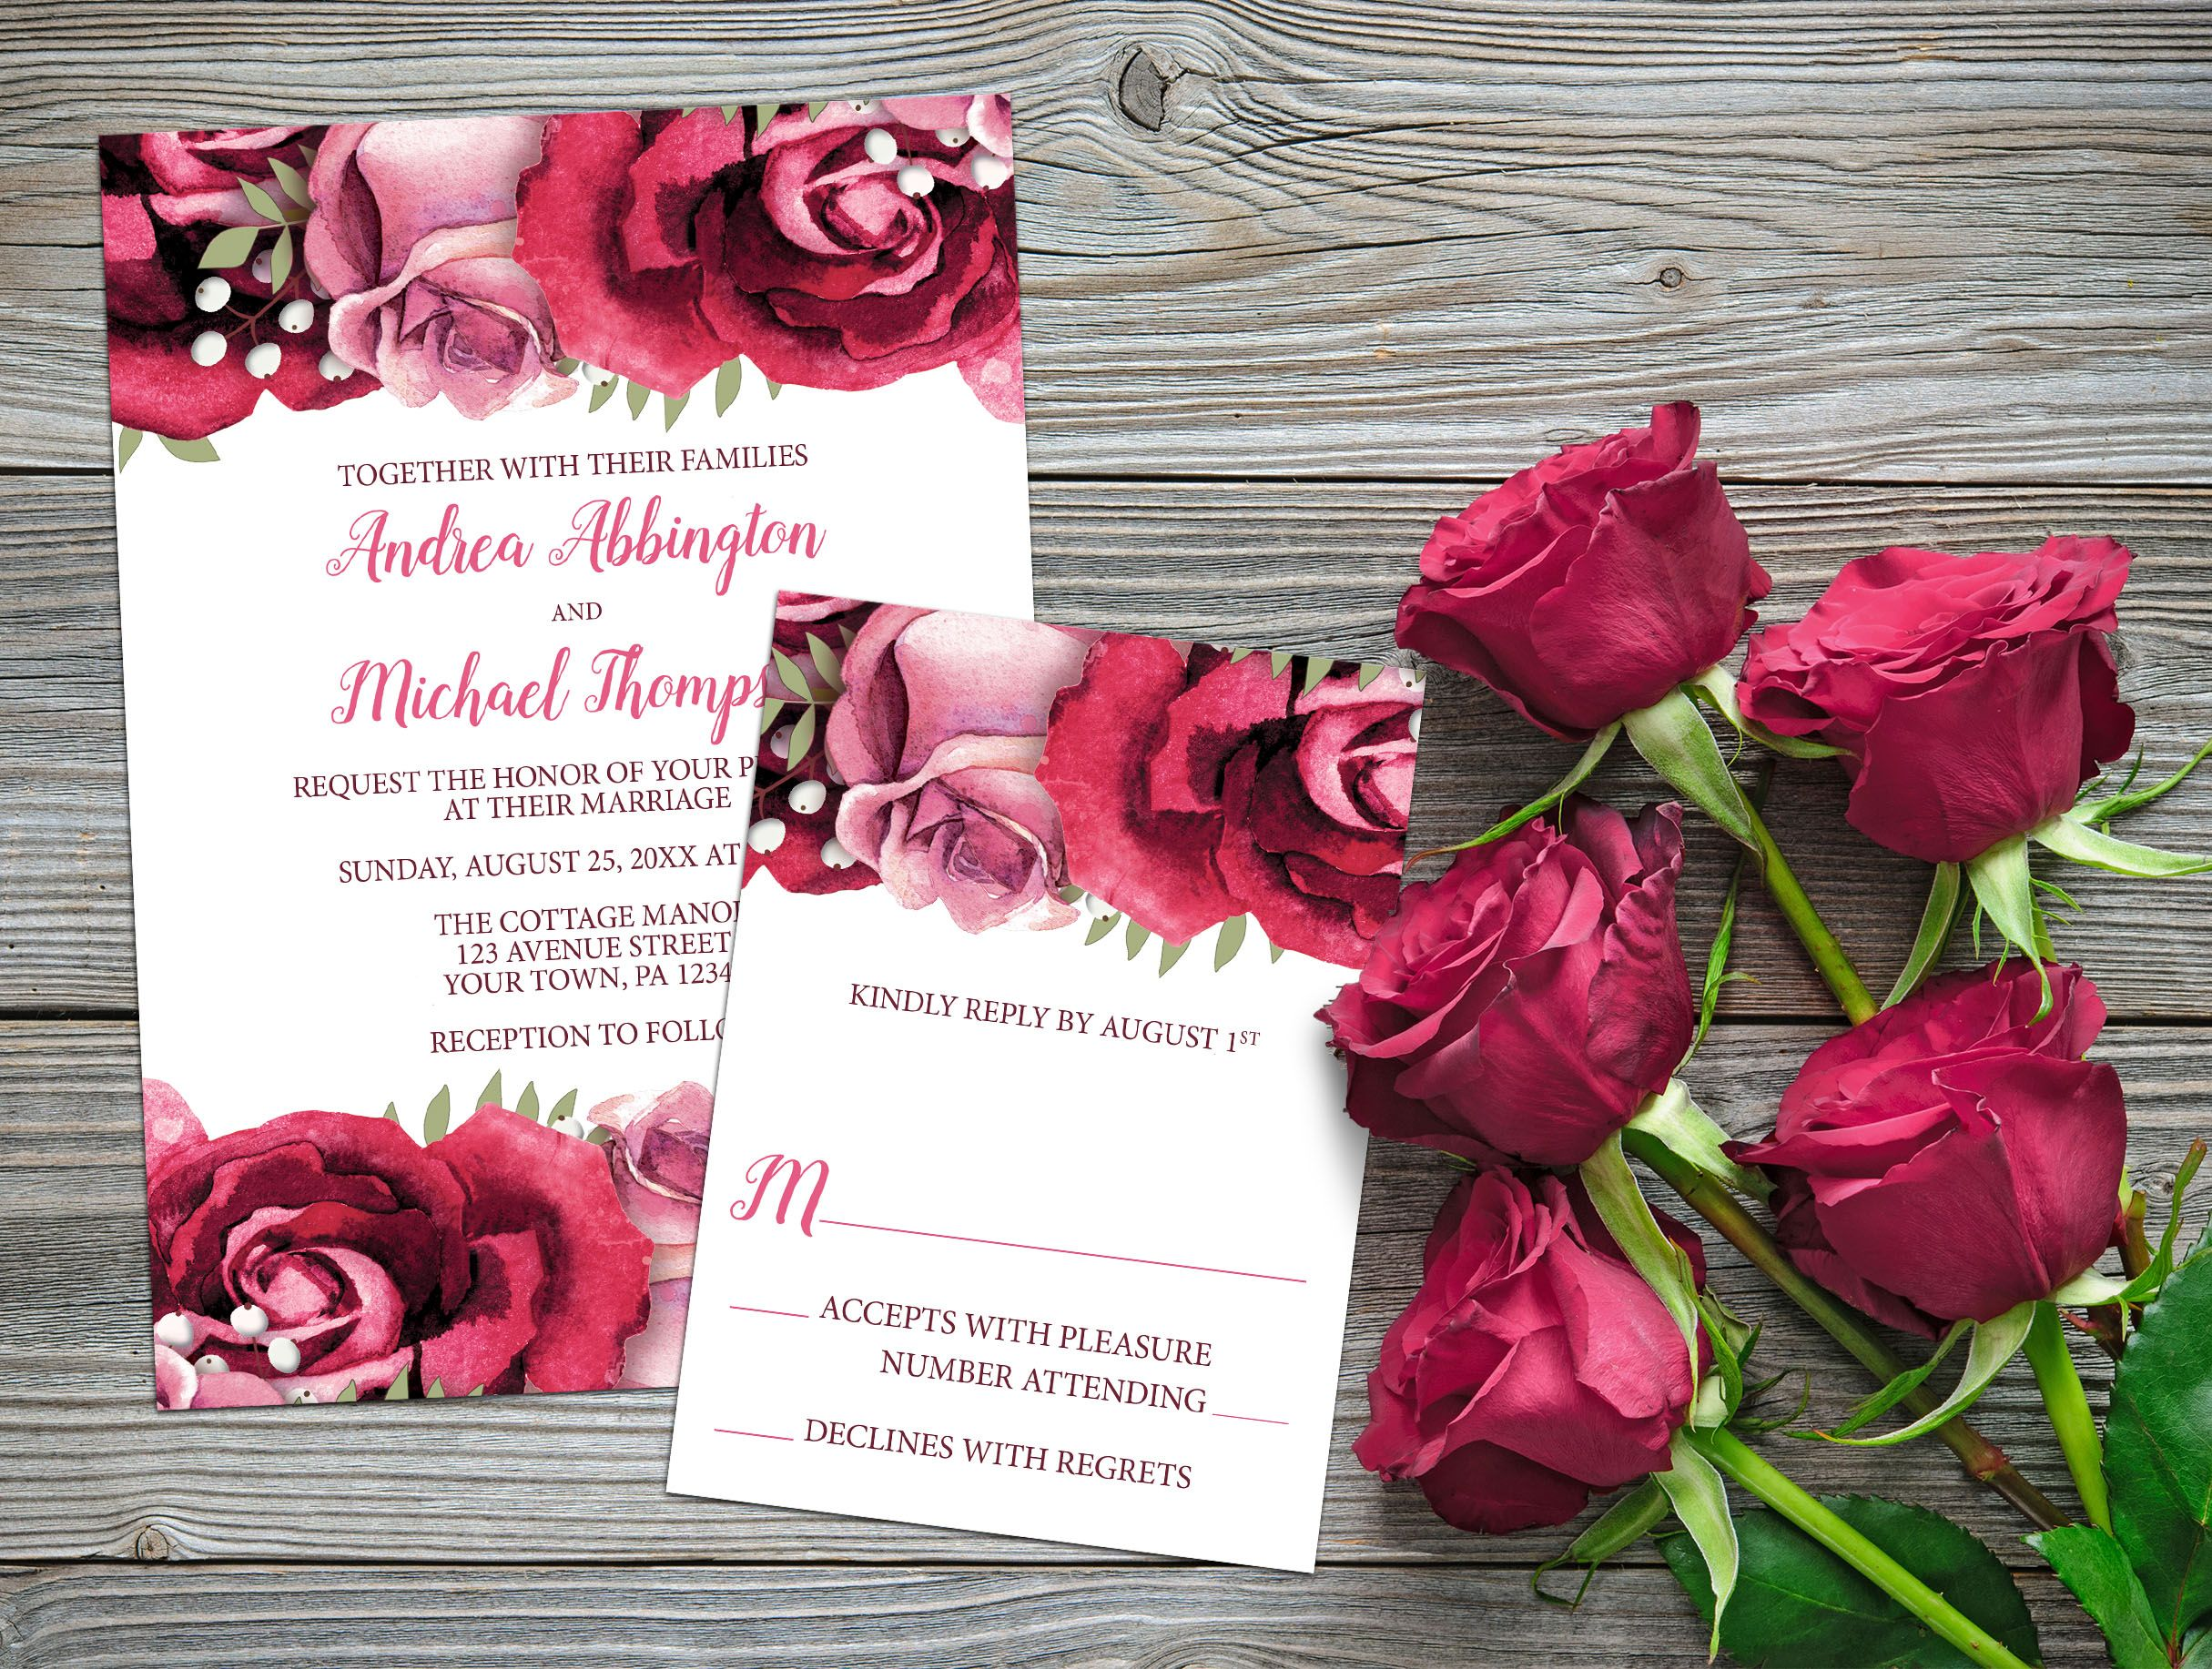 Burgundy and pink rose wedding invitation and